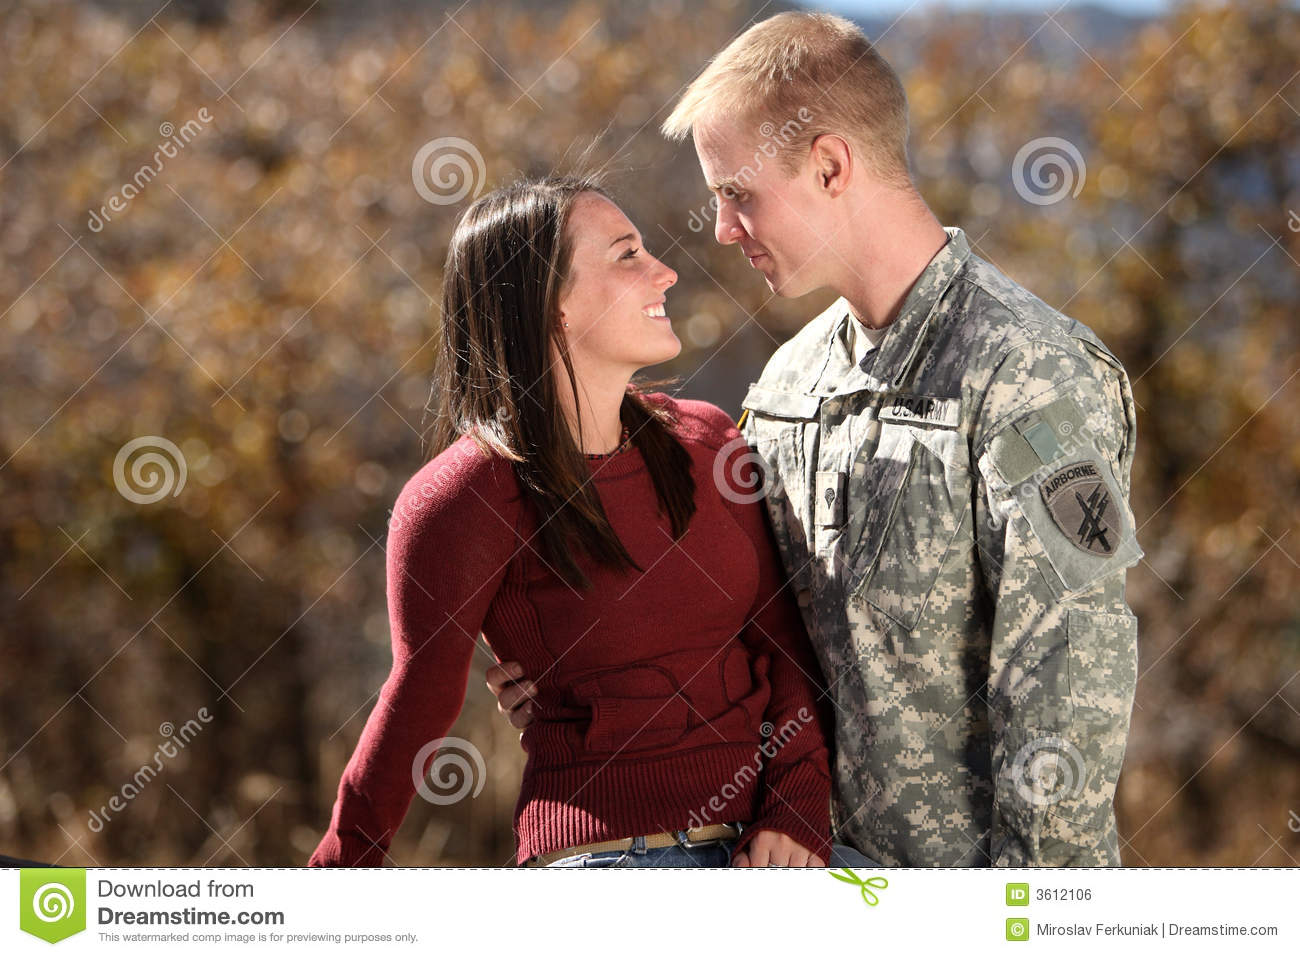 American only dating sites